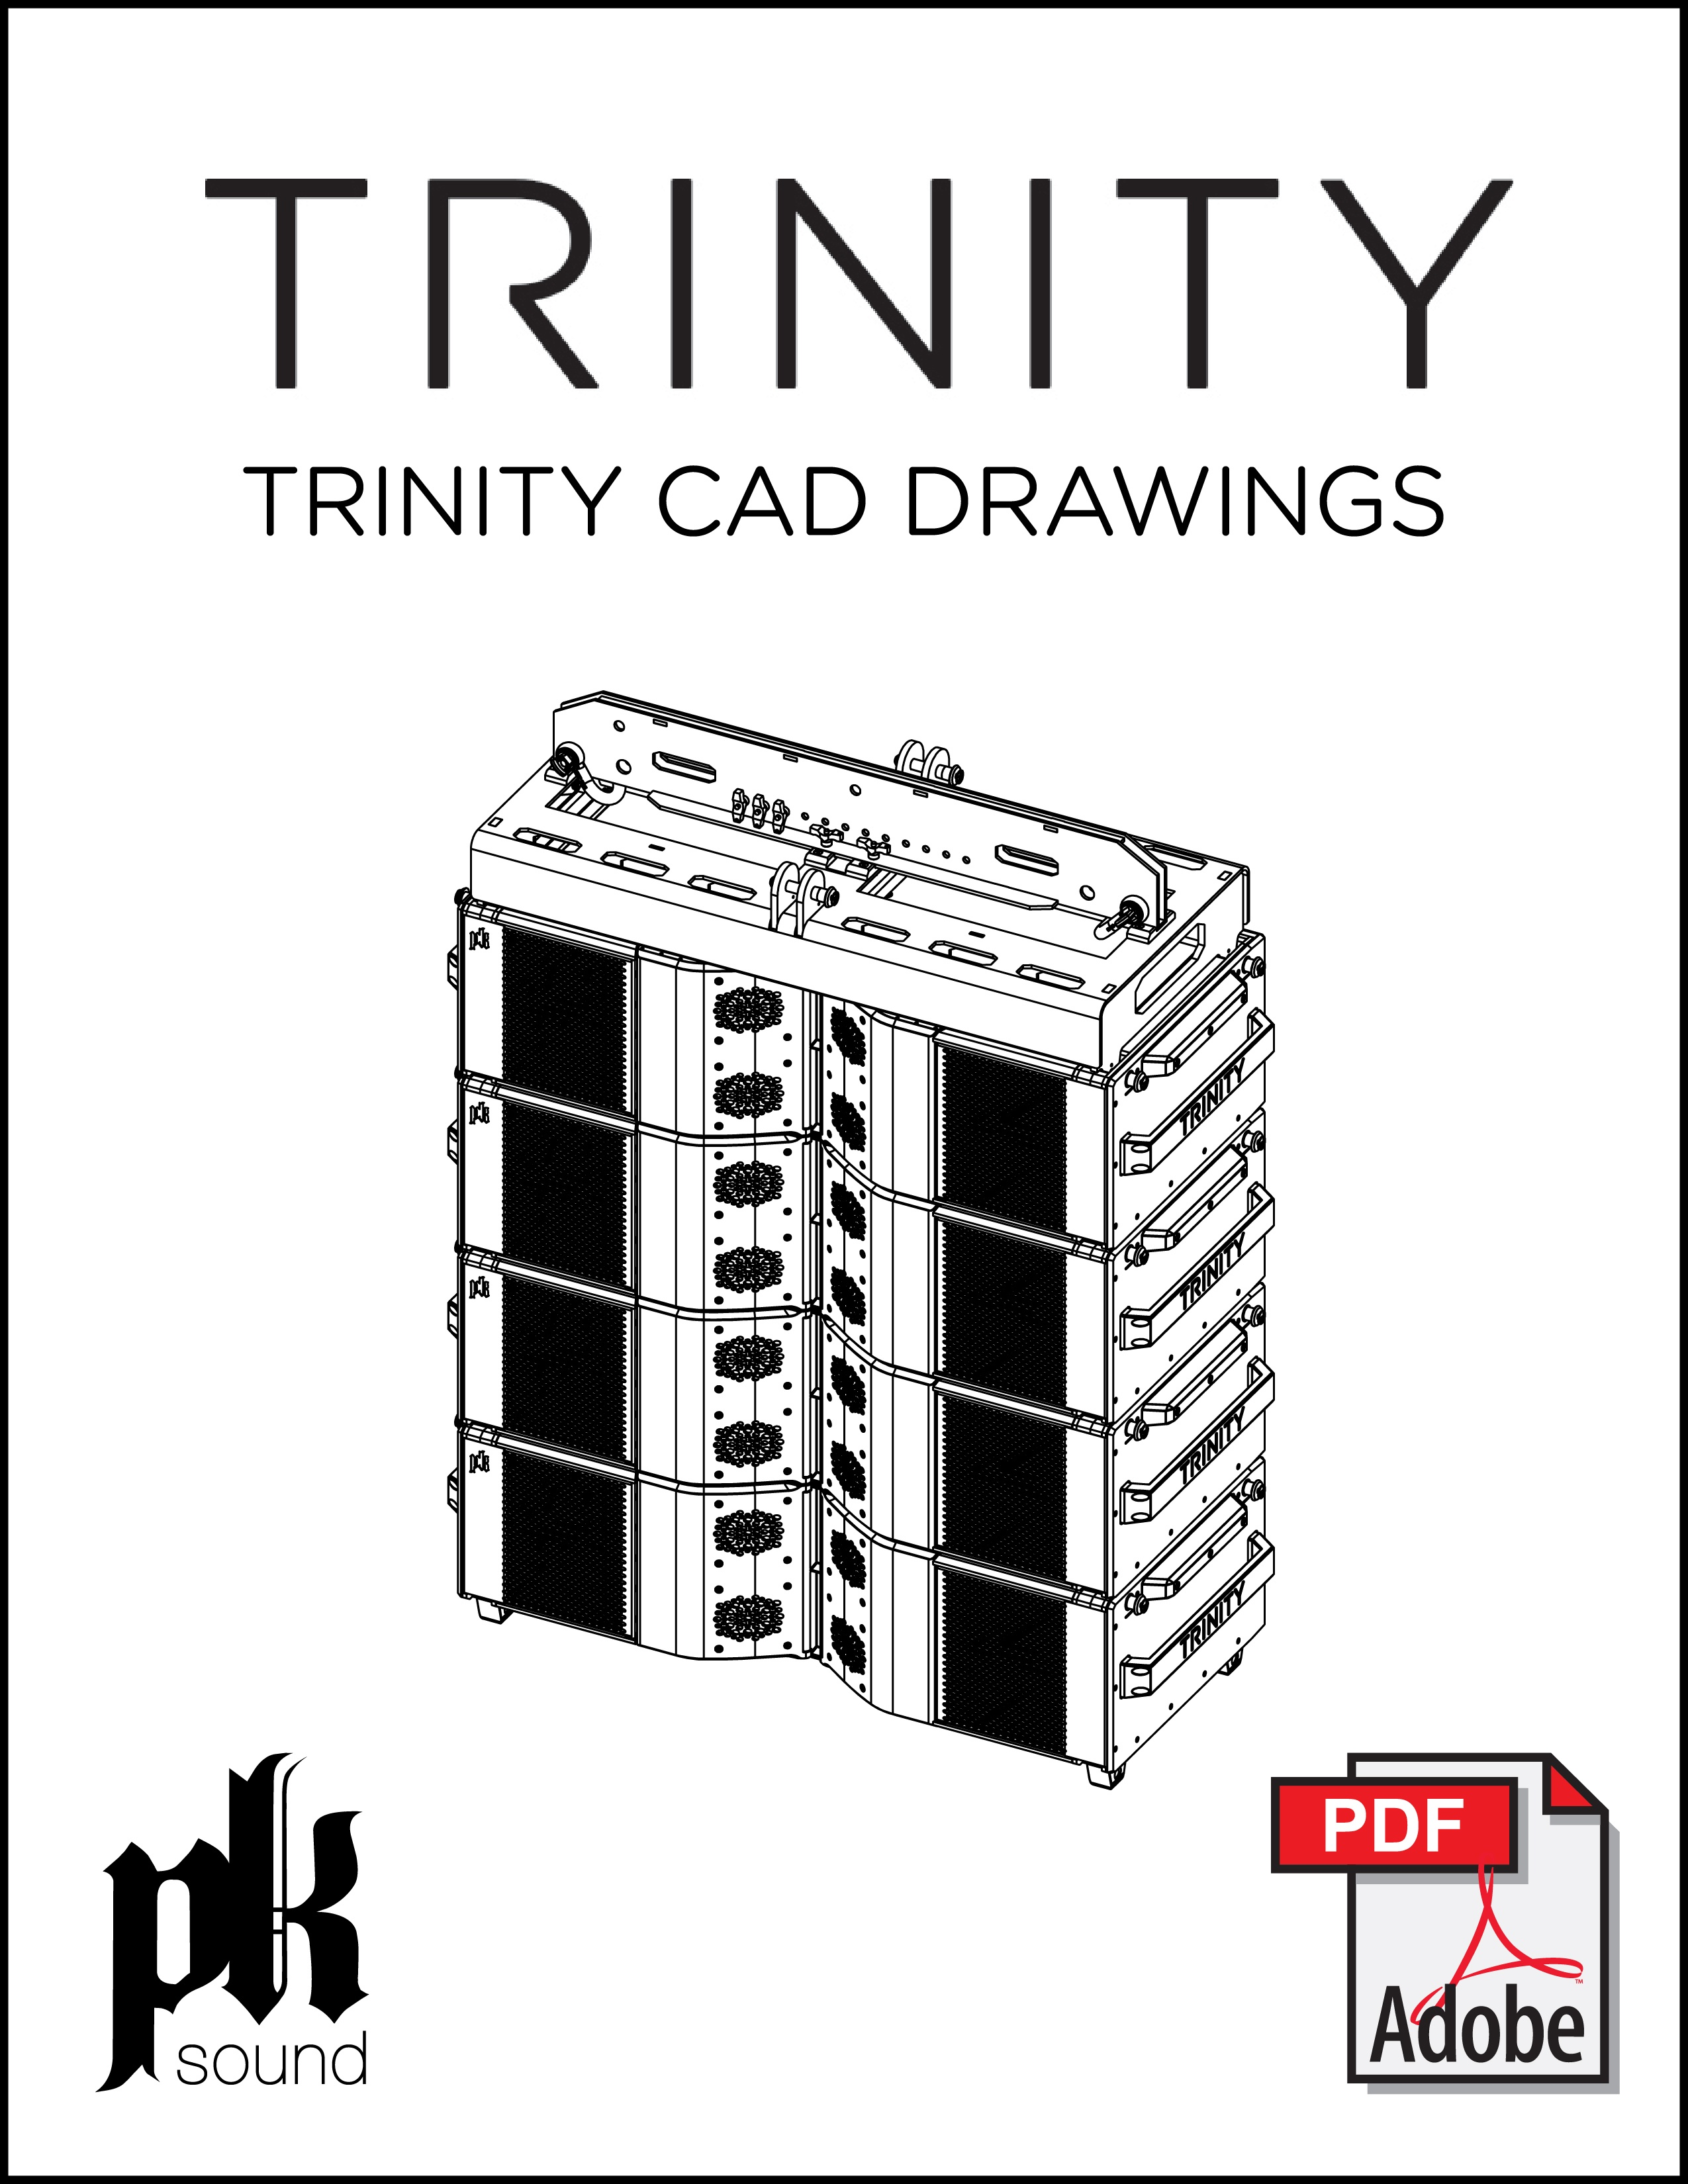 Download Trinity CAD drawings